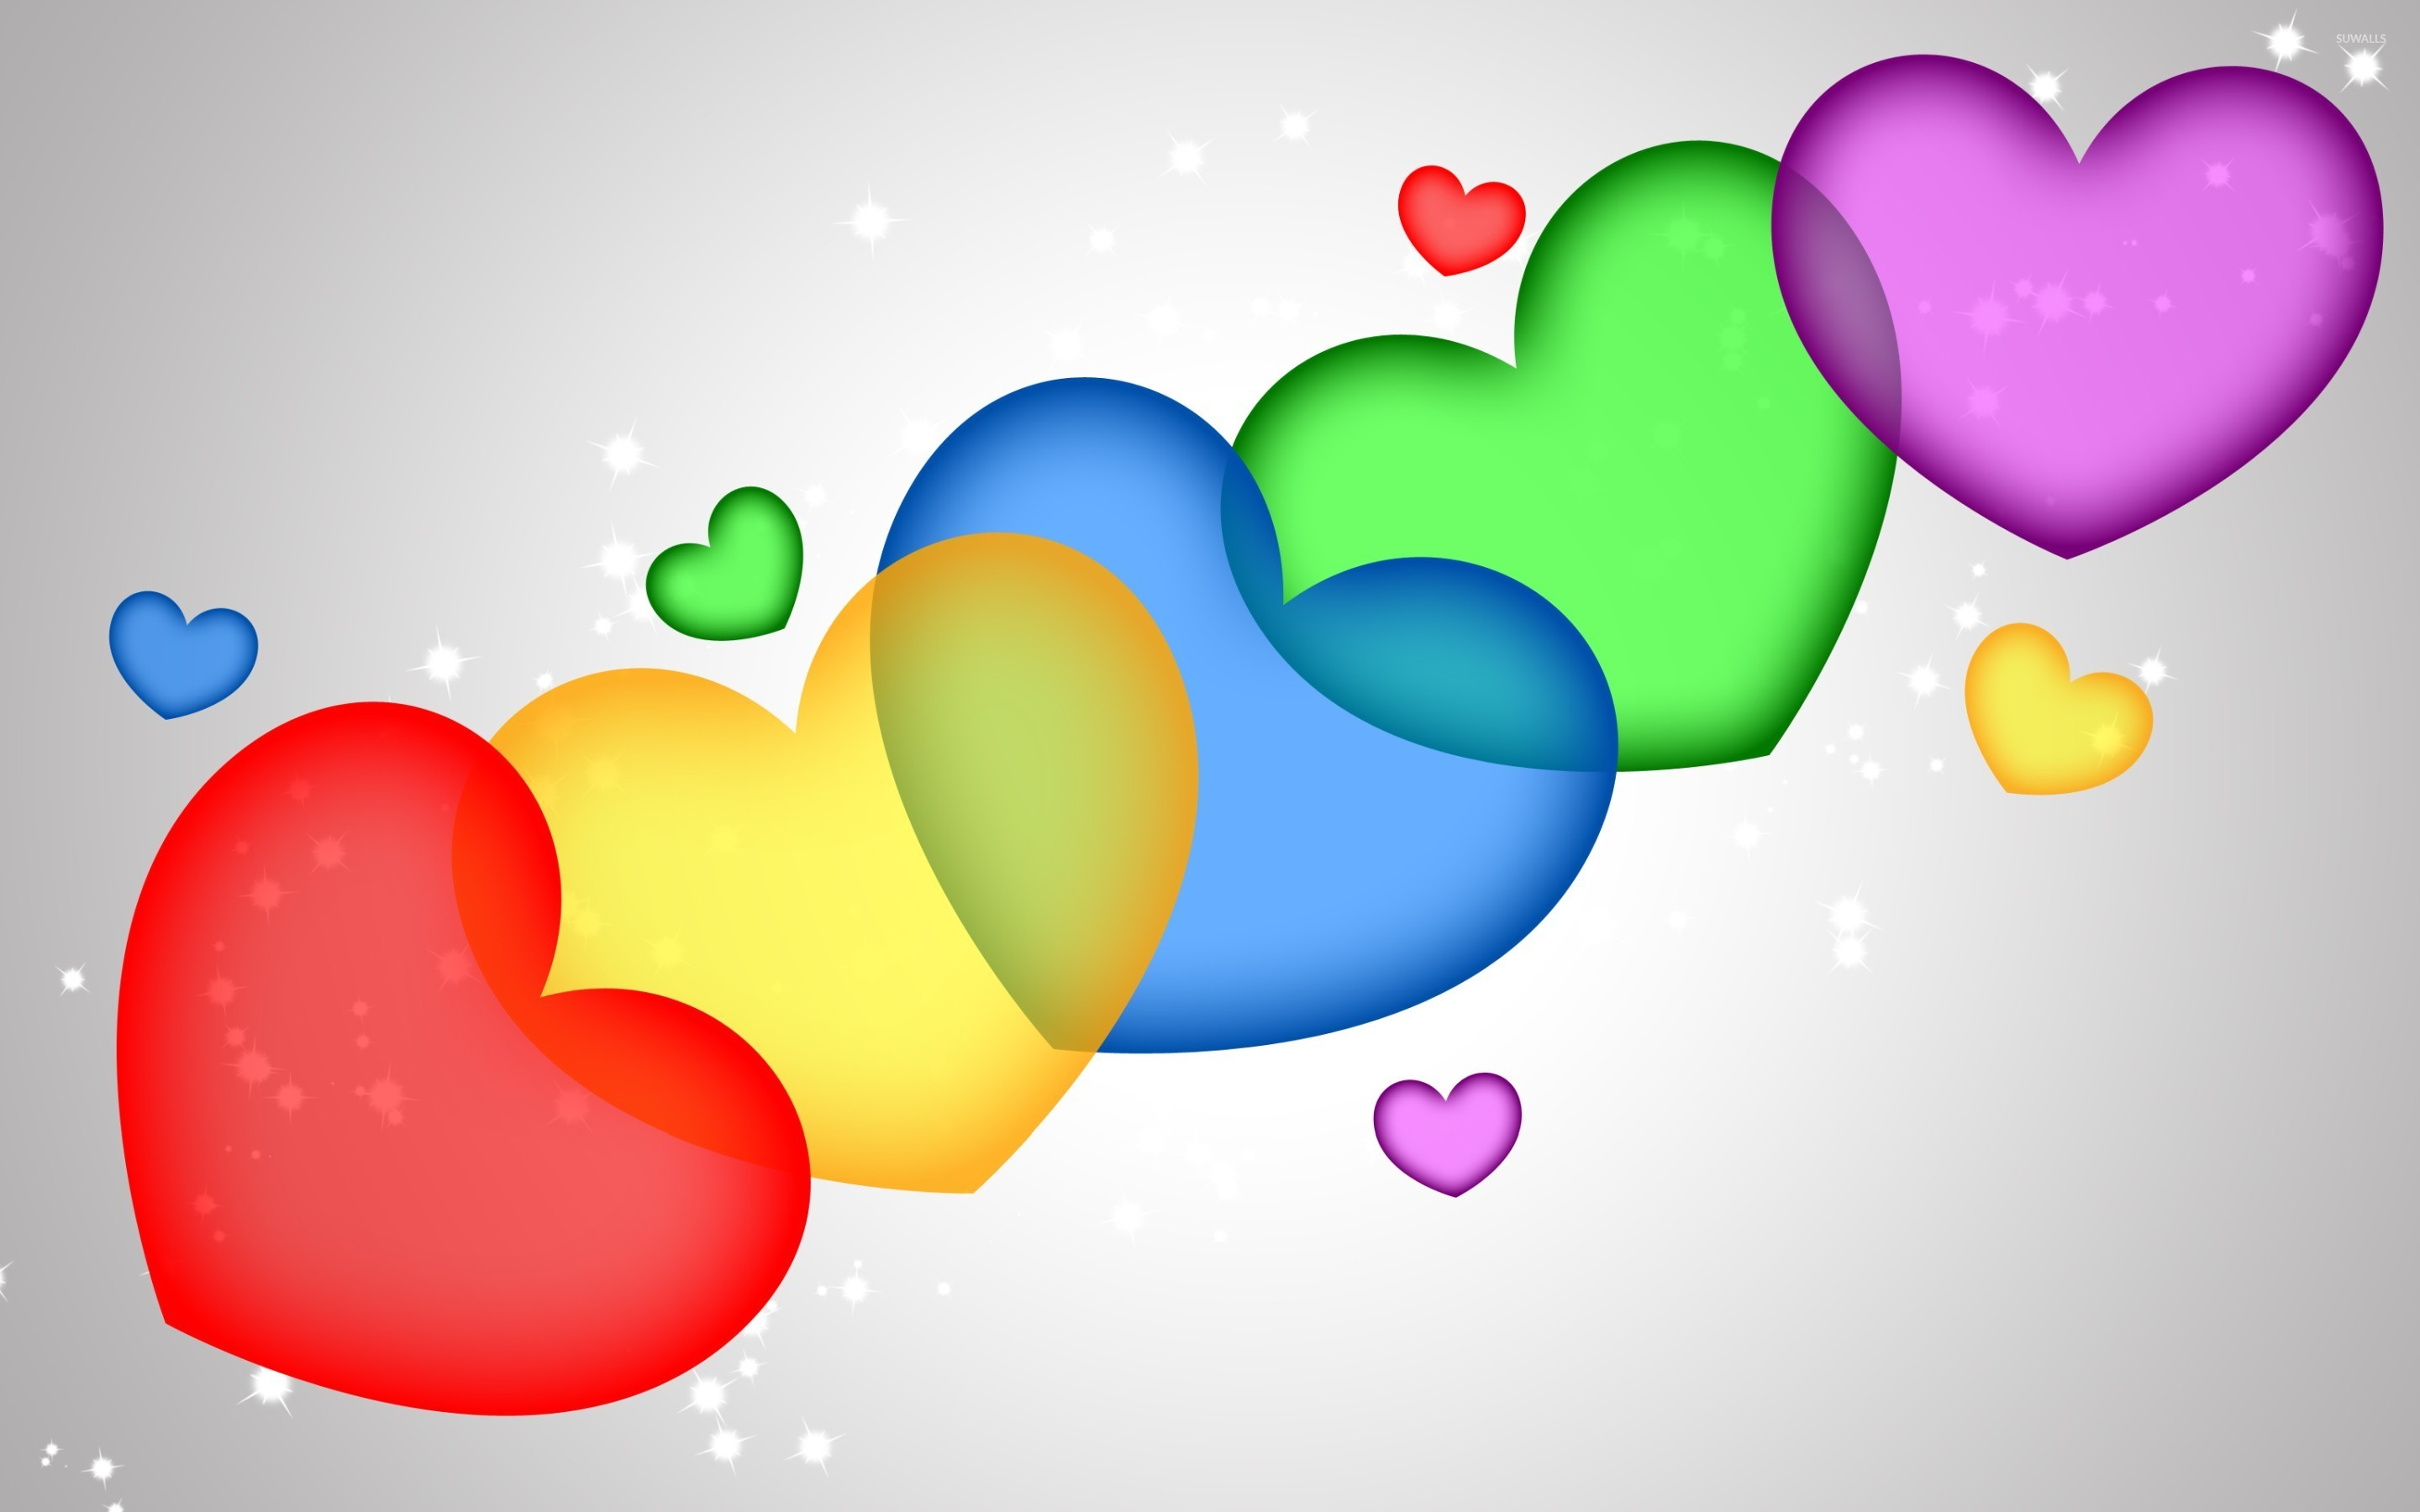 Colorful Hearts Wallpaper Full Hd - Colorful Wallpaper Hearts , HD Wallpaper & Backgrounds